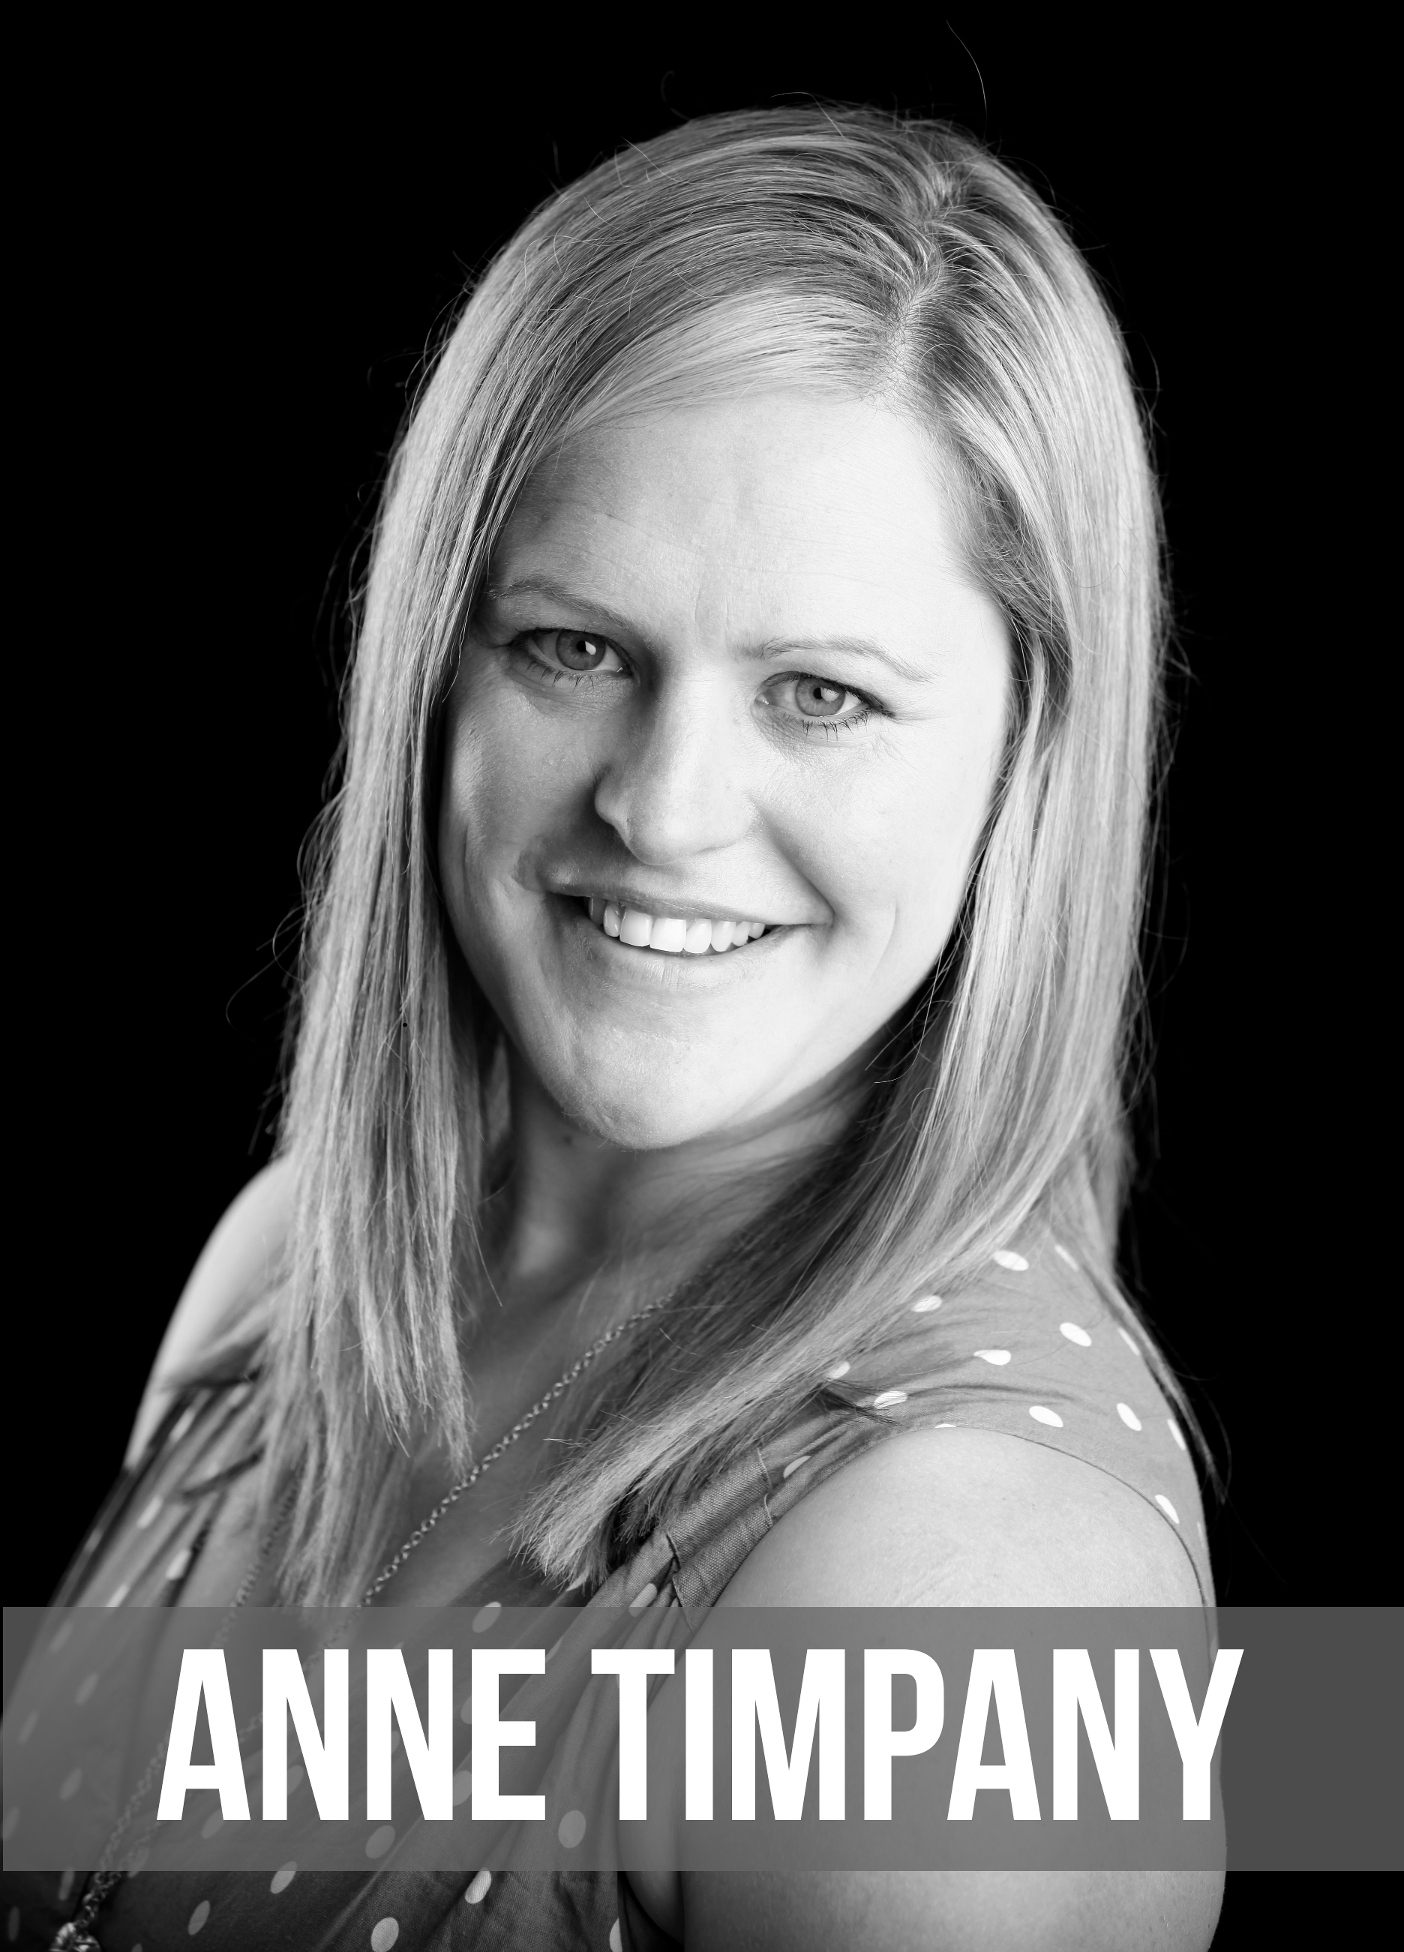 Anne Timpany Final